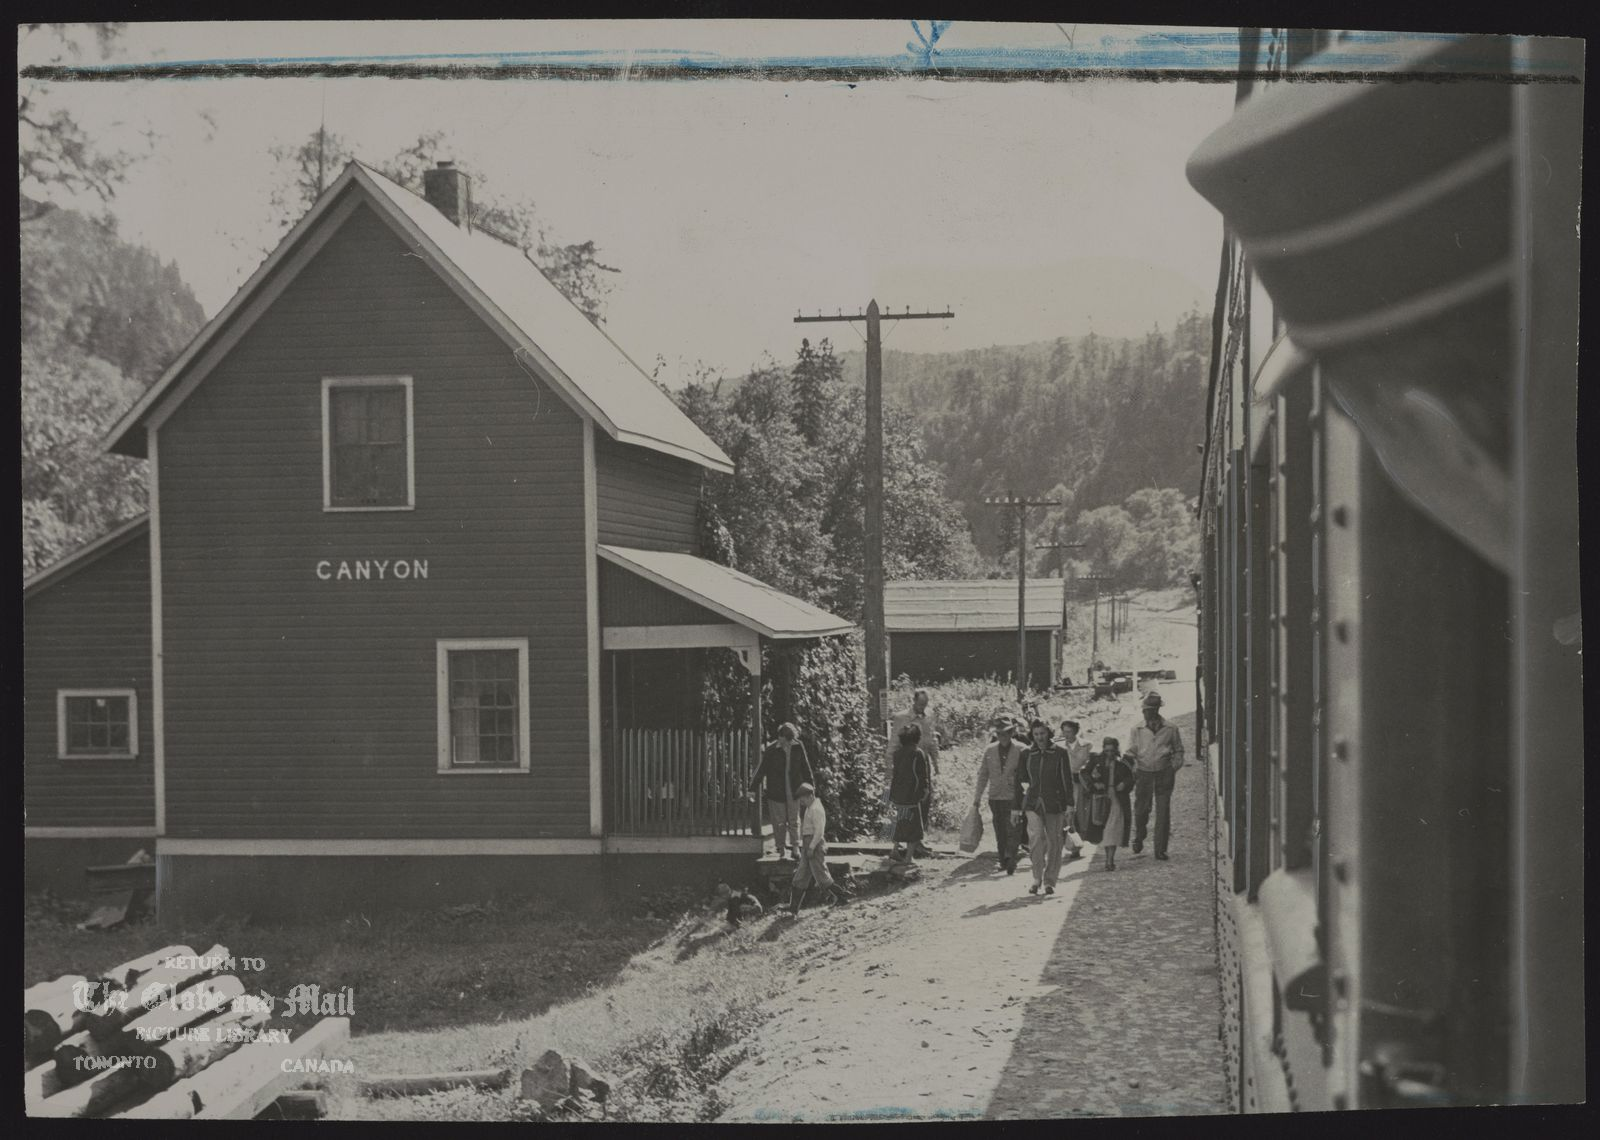 As bundle-carrying passengers walk along the cinder platfrom, Algoma Central train pulls out of Canyon station, heading through rugged grandeur toward Hearst. Station is typical barn-red, clapboard structure, strictly utilitarian.